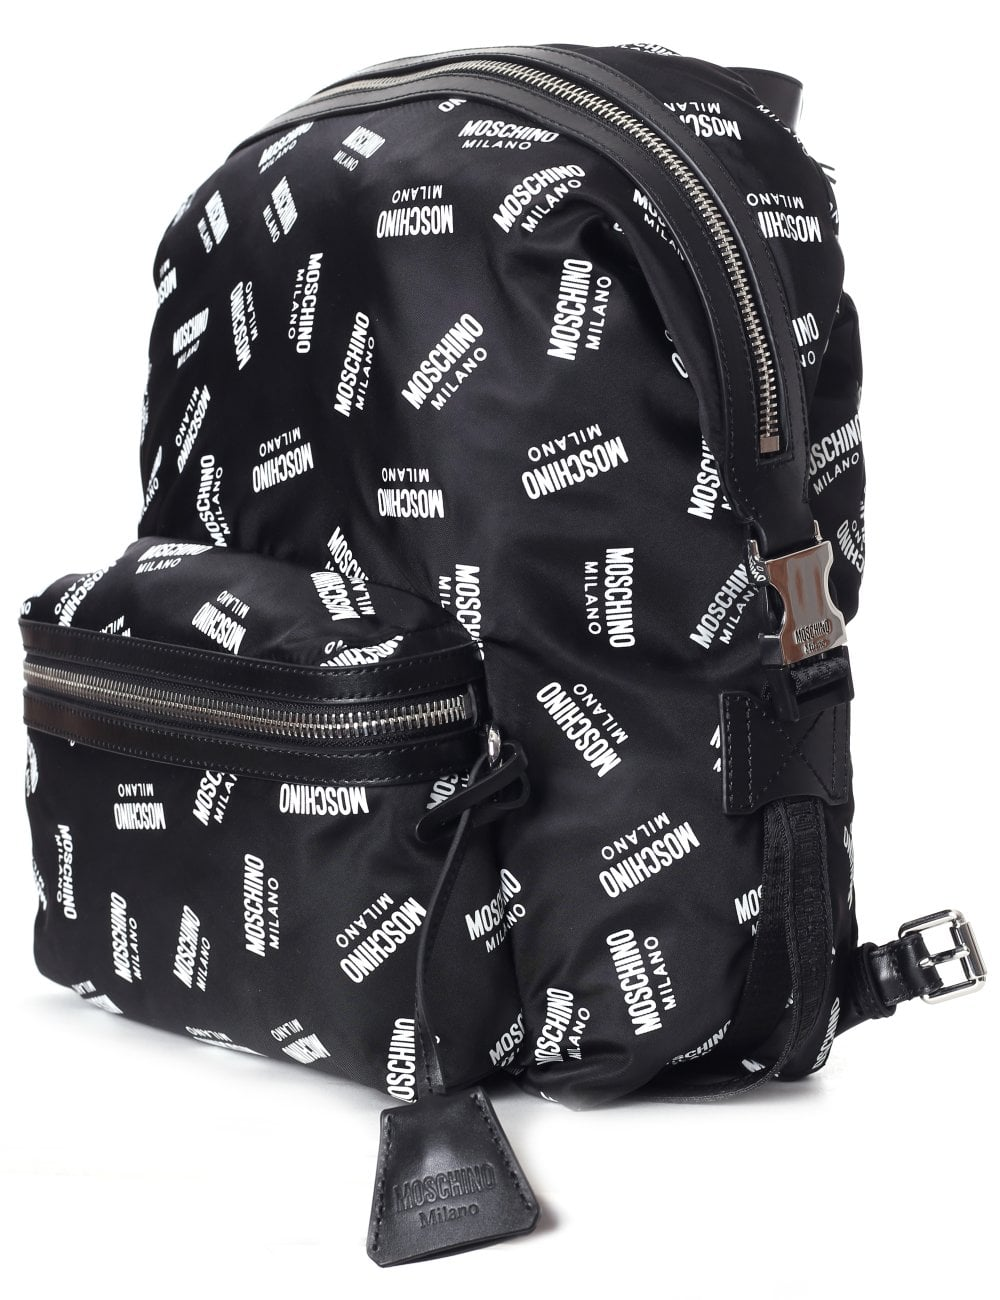 6db797e612 Moschino Couture Women's All Over Logo Backpack